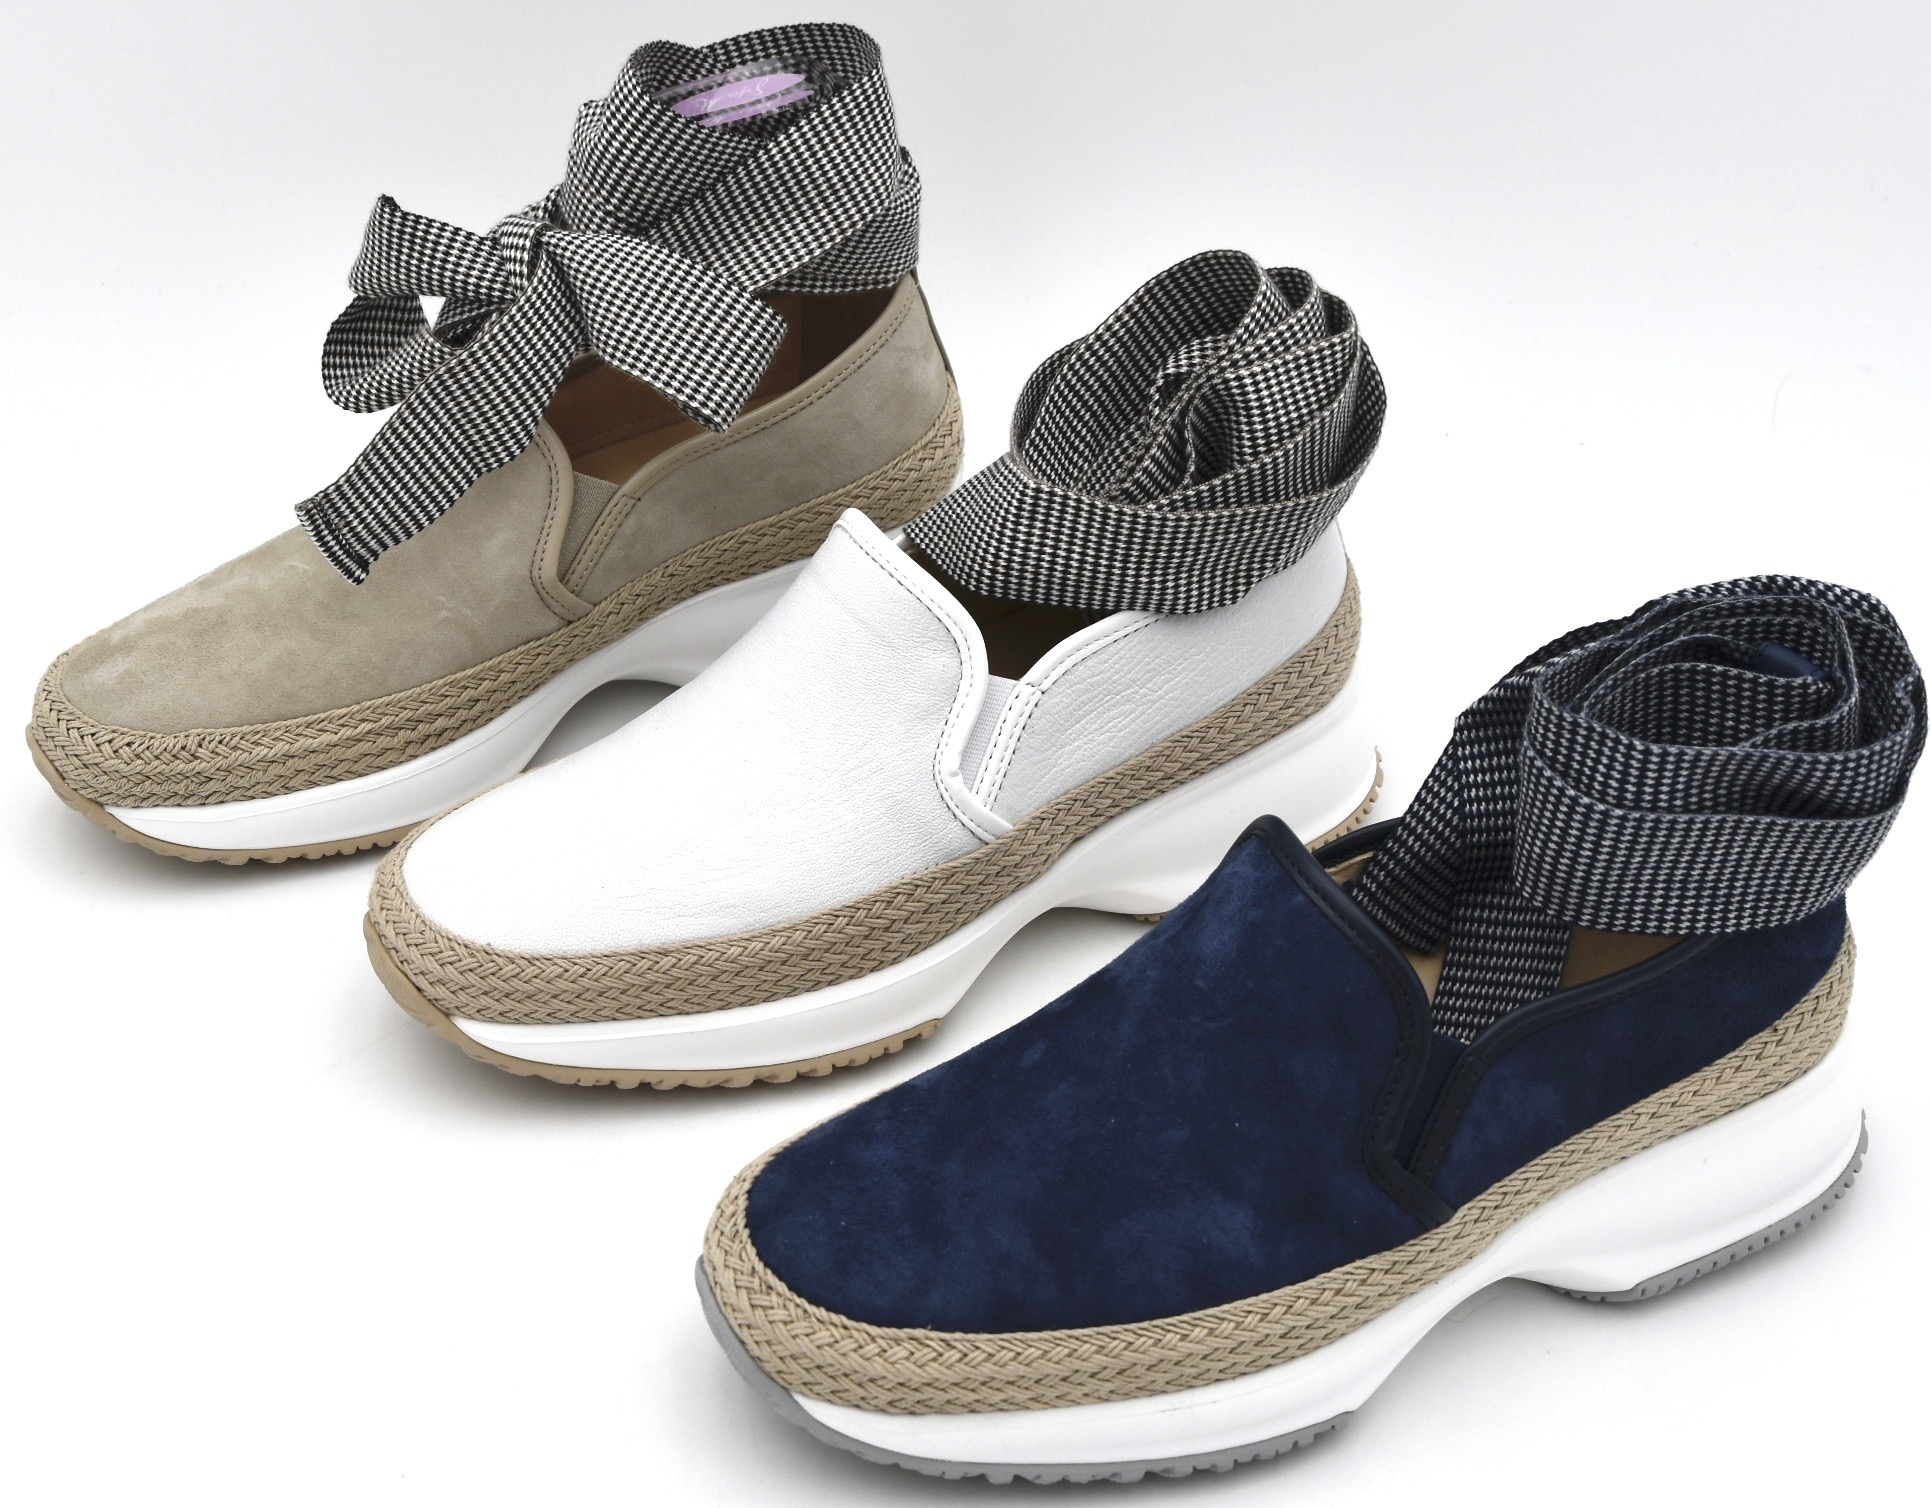 HOGAN H222 WOMAN SNEAKER SLIP ON SHOES SPORTS CASUAL TRAINERS HXW2220T671IGT0A1B